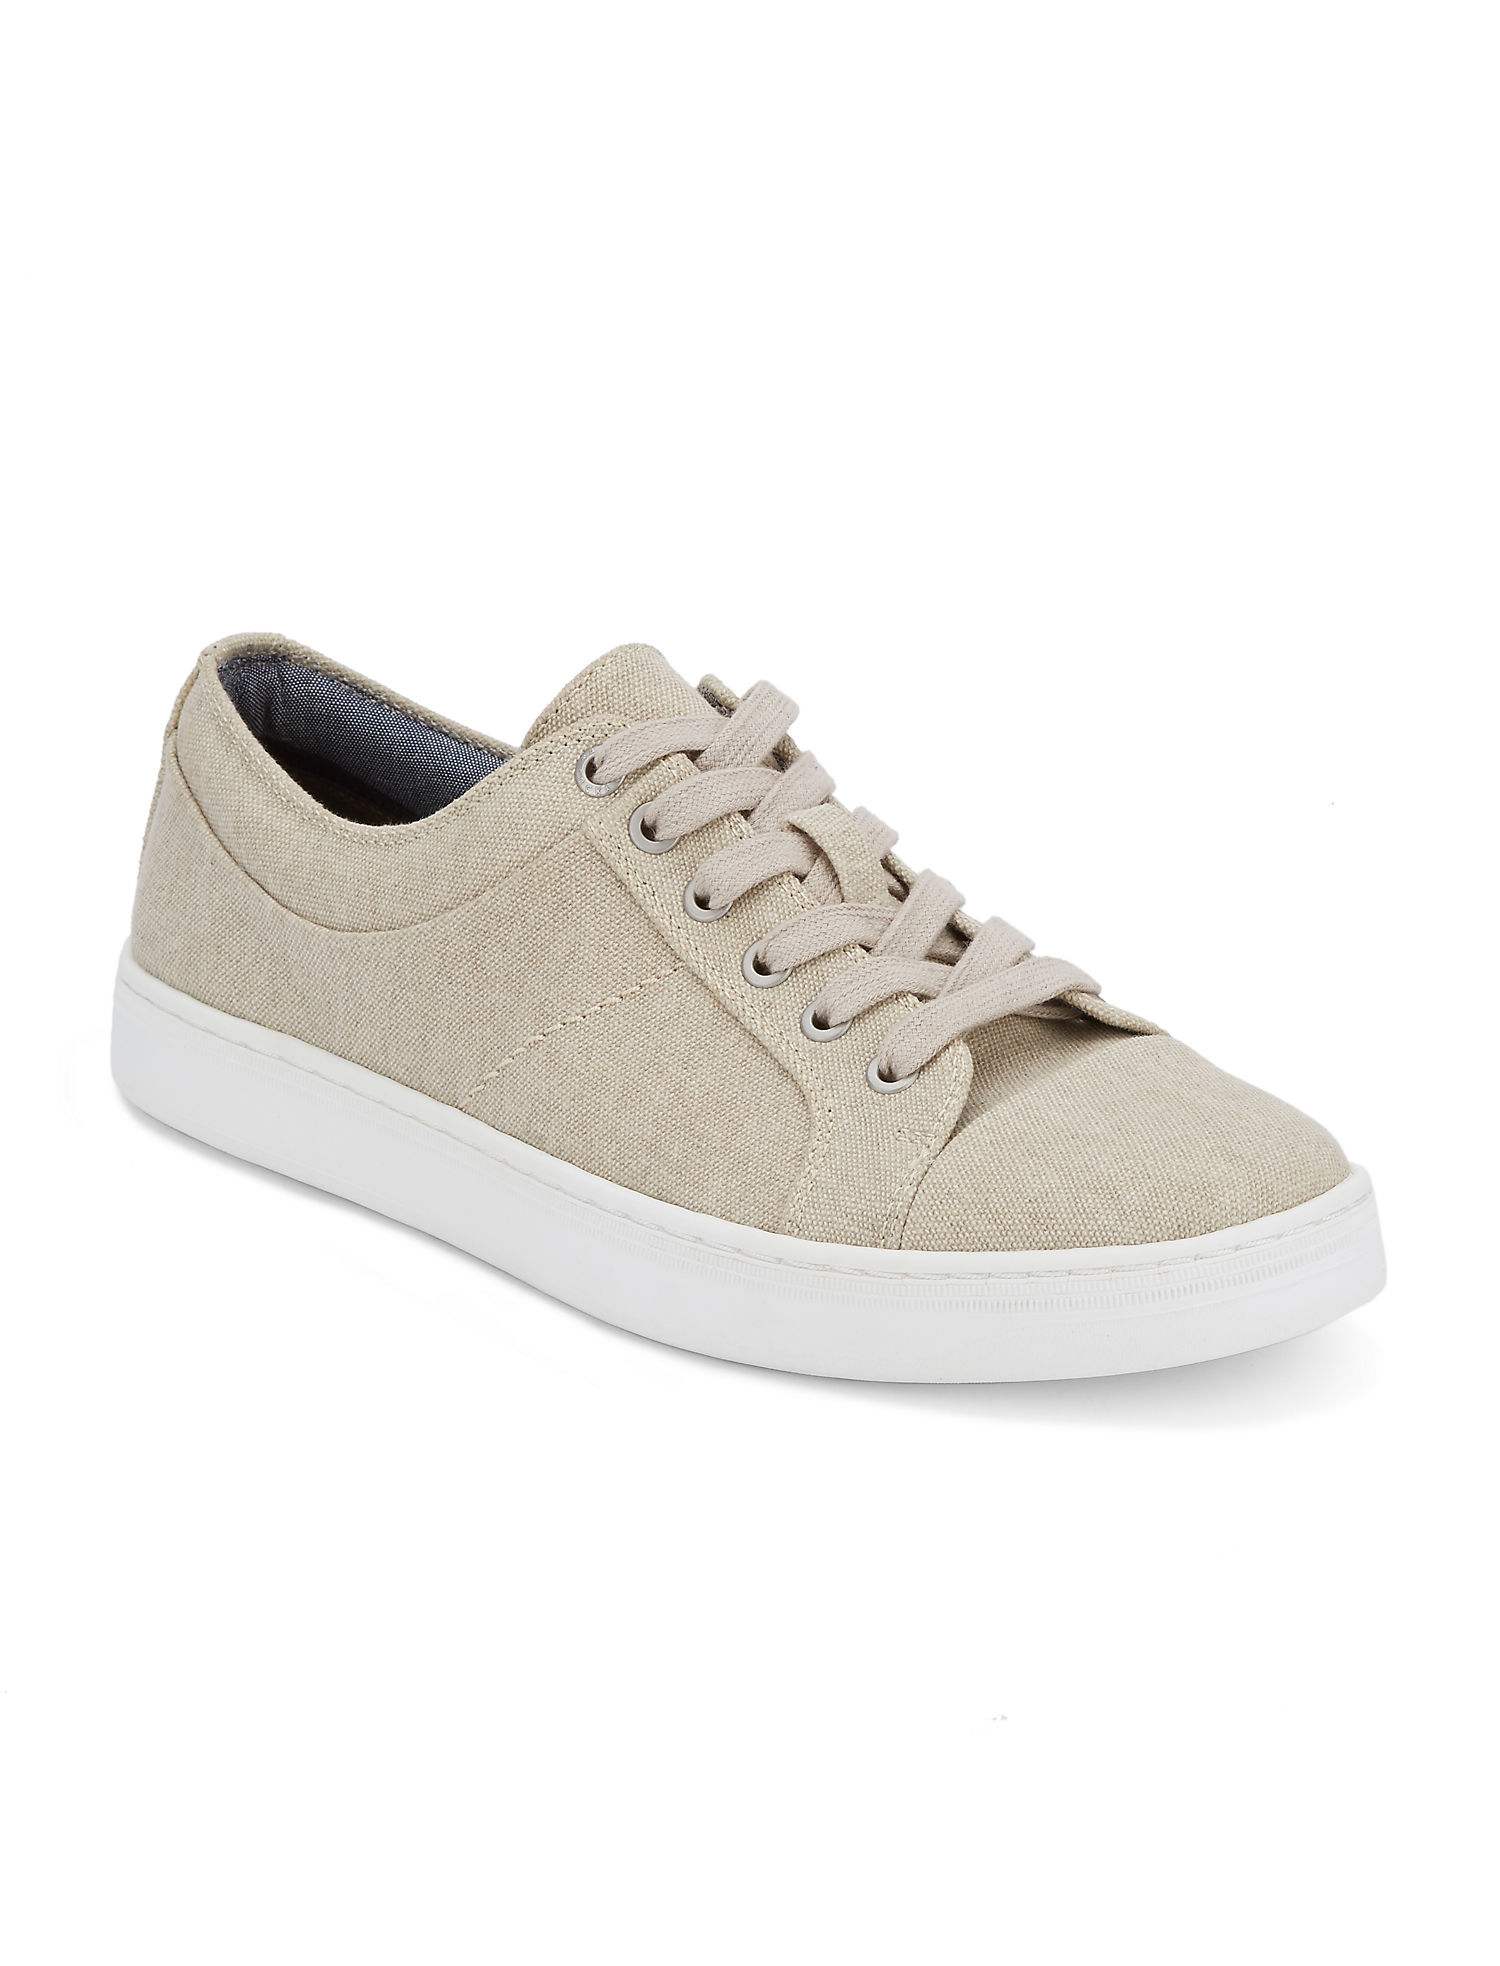 Lucky Brand Spence Lace-Up Sneaker Sale Low Price Clearance Recommend Official Site Discounts Cheap Price Pay With Visa cIpaJGx9t